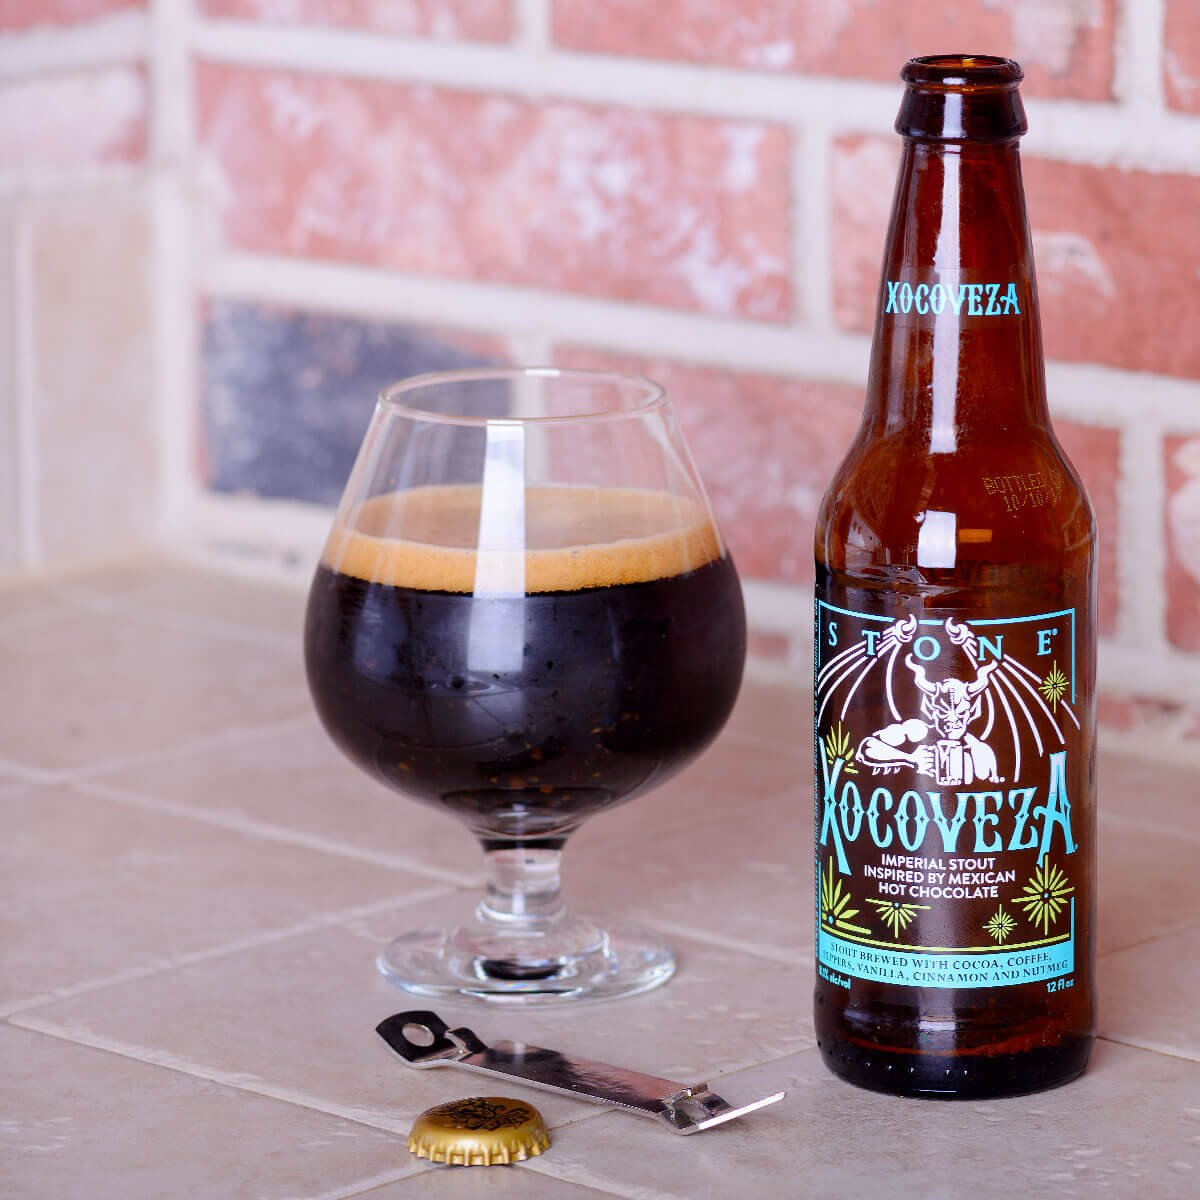 Stone Xocoveza, an American Imperial Stout by Stone Brewing